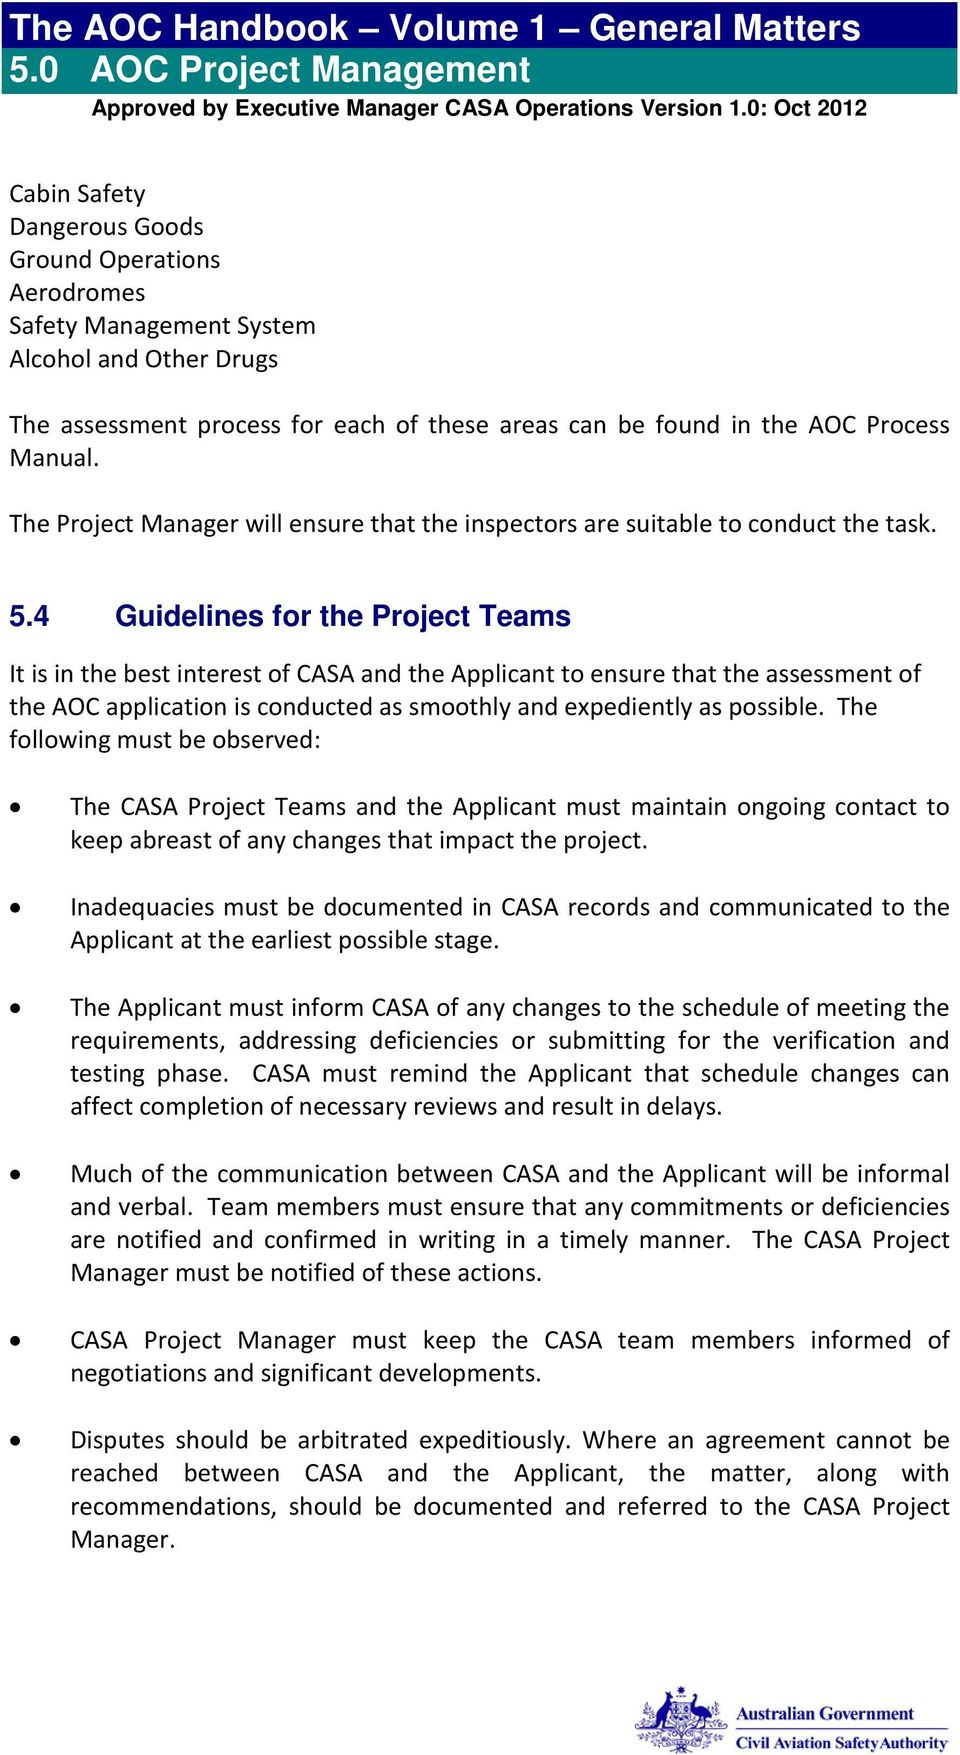 4 Guidelines for the Project Teams It is in the best interest of CASA and the Applicant to ensure that the assessment of the AOC application is conducted as smoothly and expediently as possible.